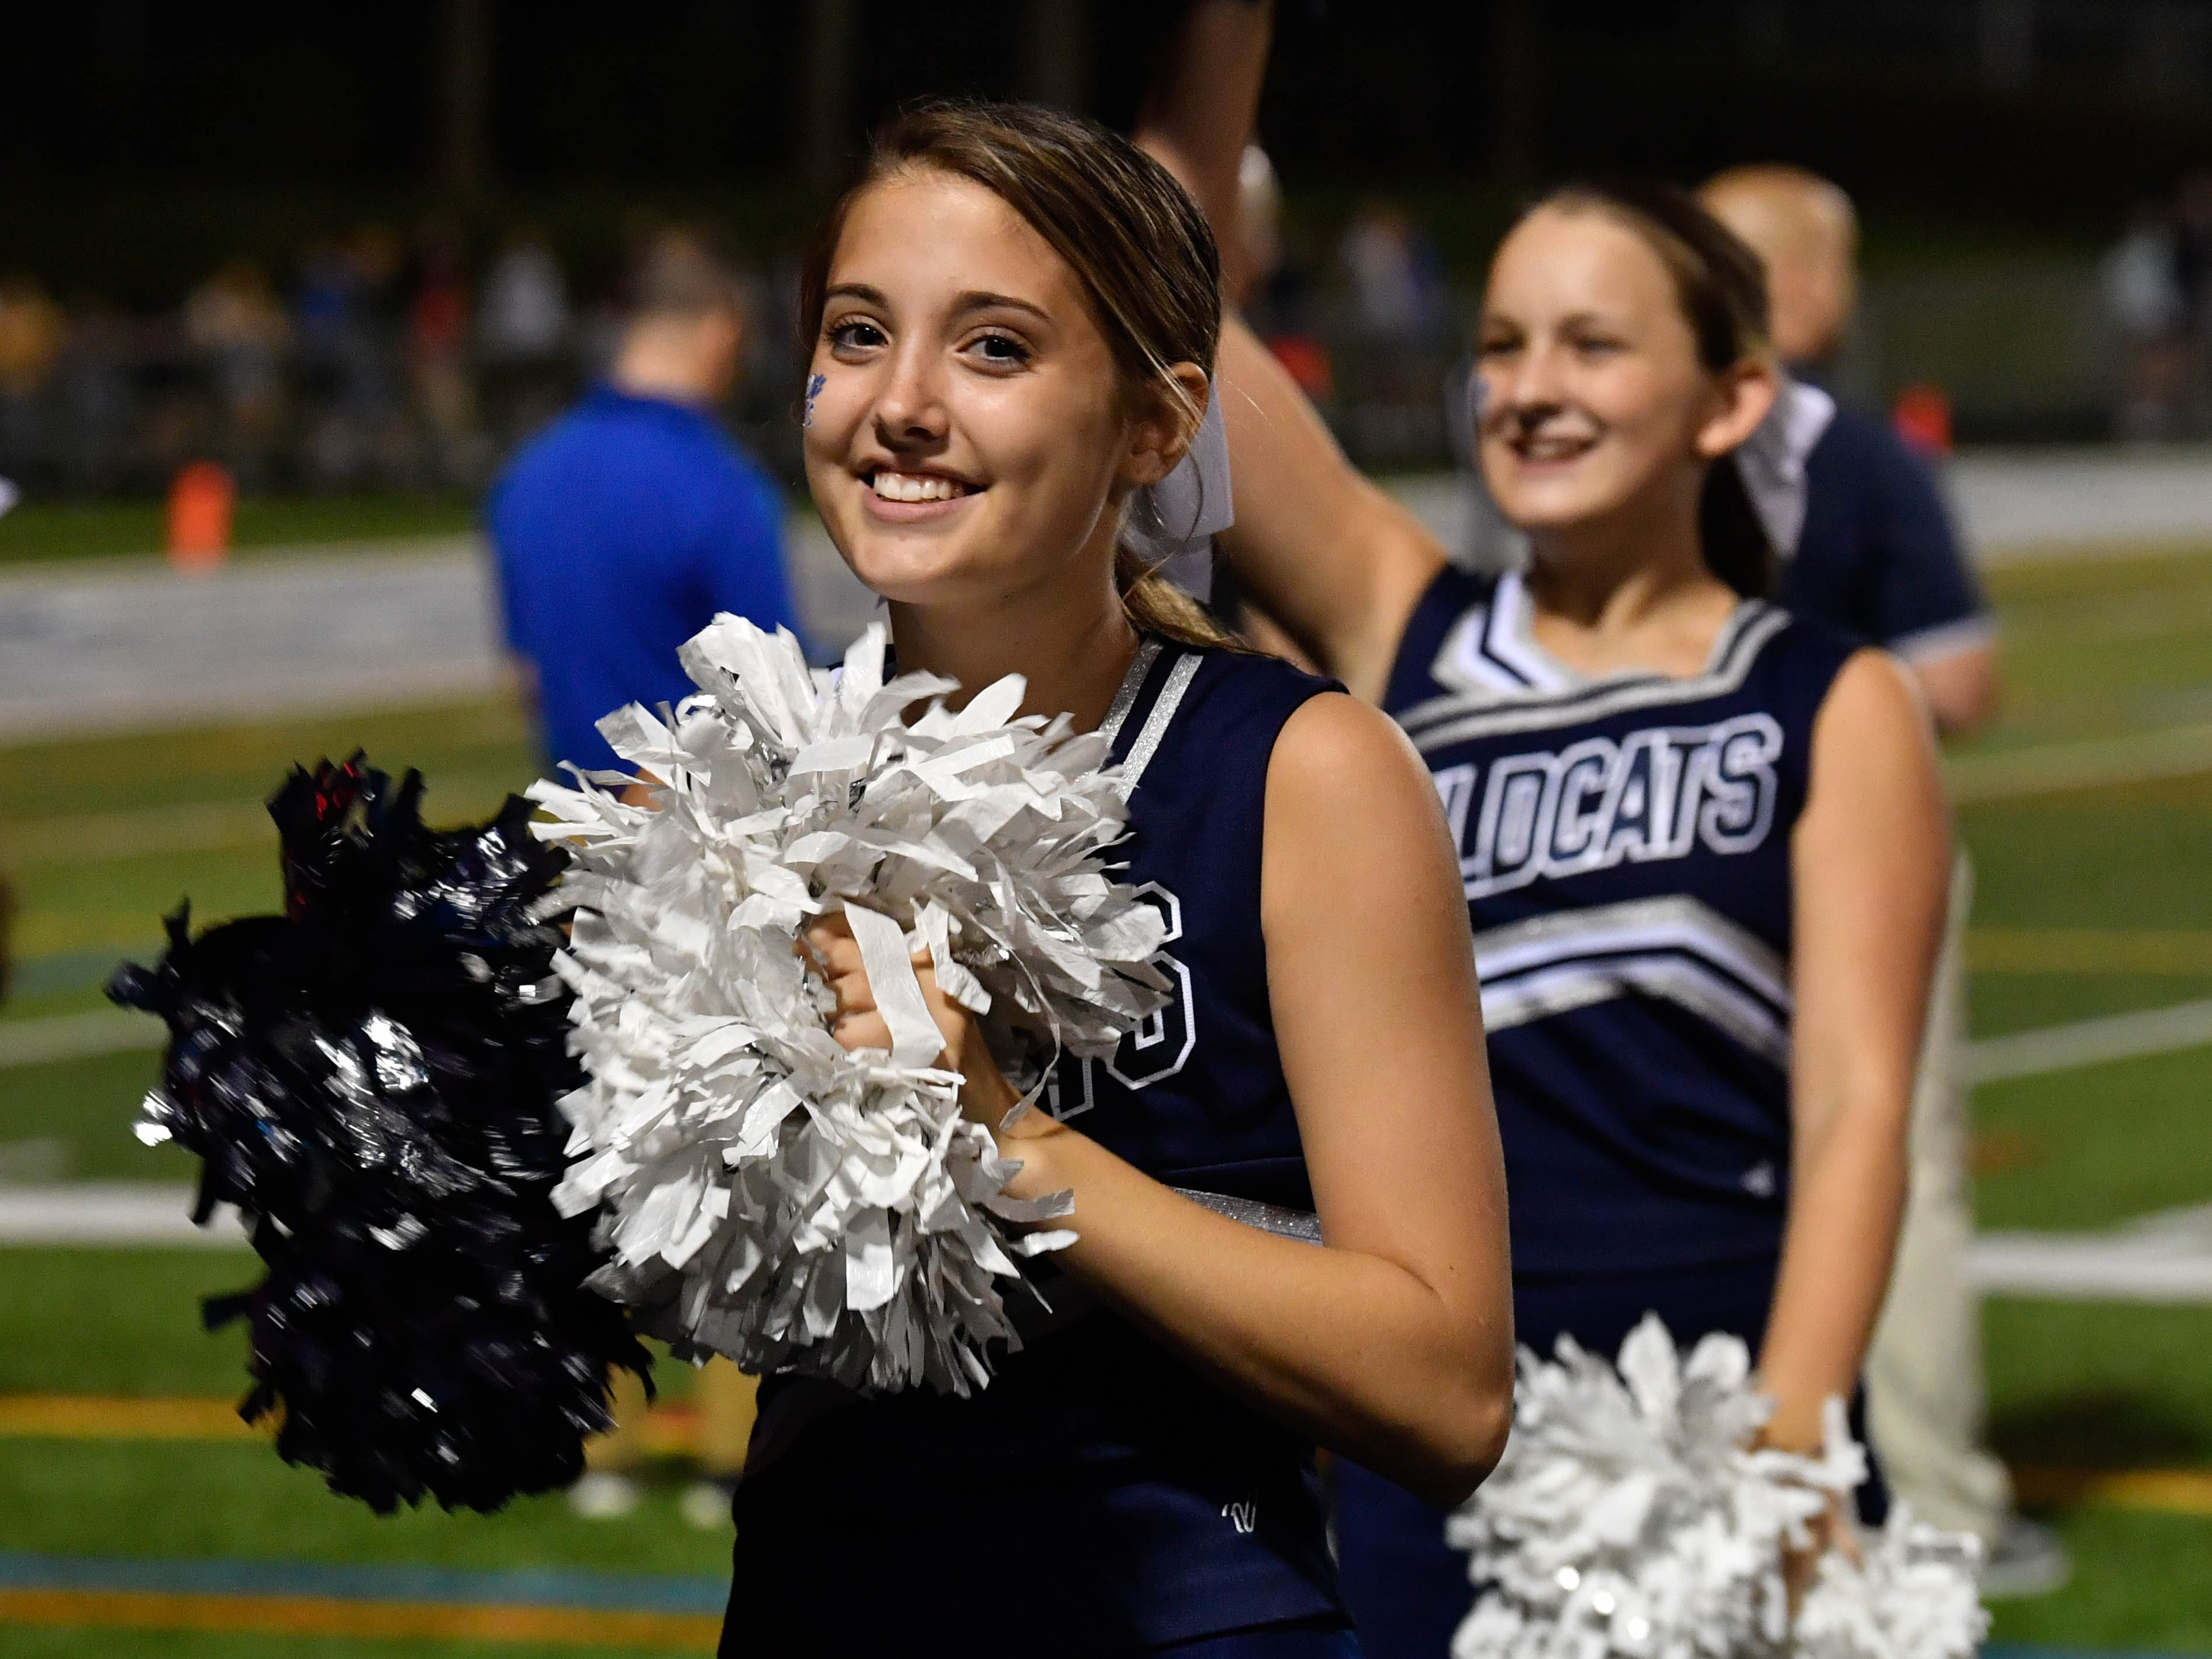 Dallastown cheerleaders hype up the crowd during the home opening football game against Hempfield on Friday, August 24, 2018.